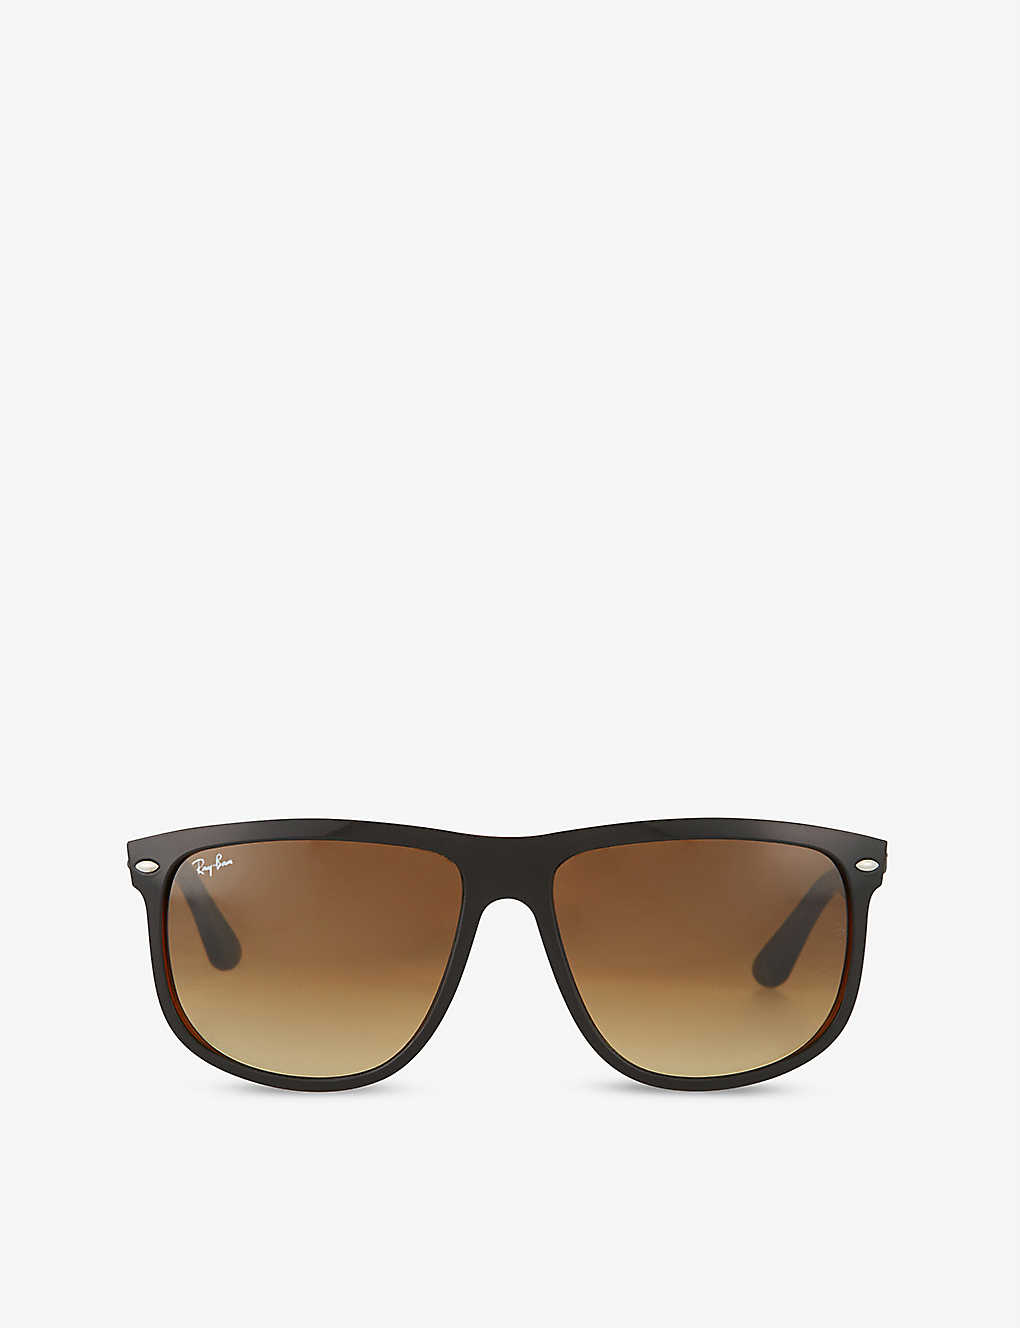 44eedd1c4c3 RAY-BAN - Black on brown square sunglasses with brown tinted lenses ...